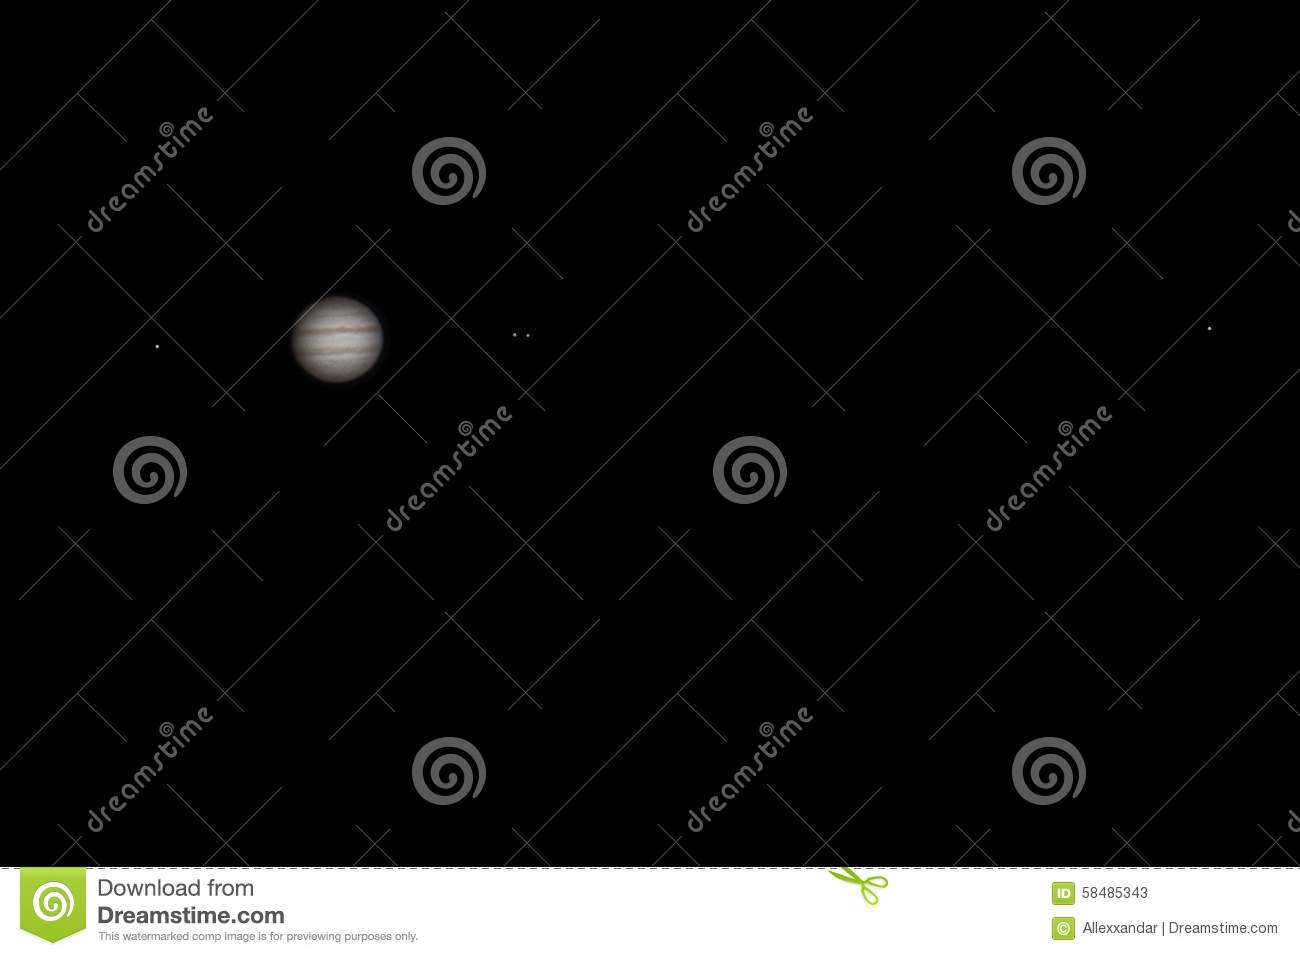 real picture of jupiter with satellites europa io ganymede